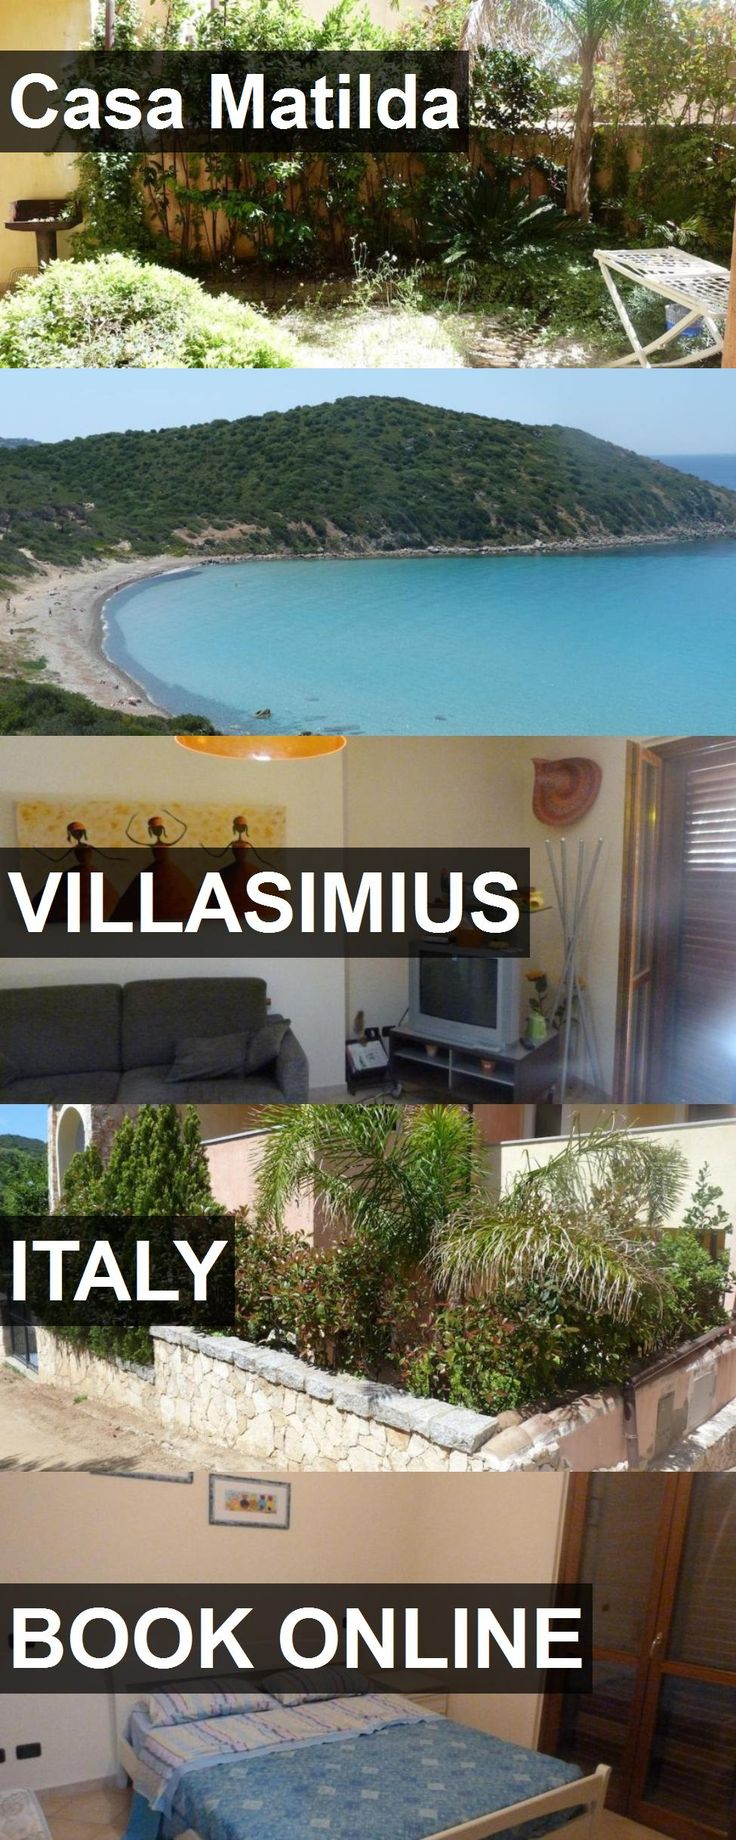 Hotel Casa Matilda in Villasimius, Italy. For more information, photos, reviews and best prices please follow the link. #Italy #Villasimius #travel #vacation #hotel